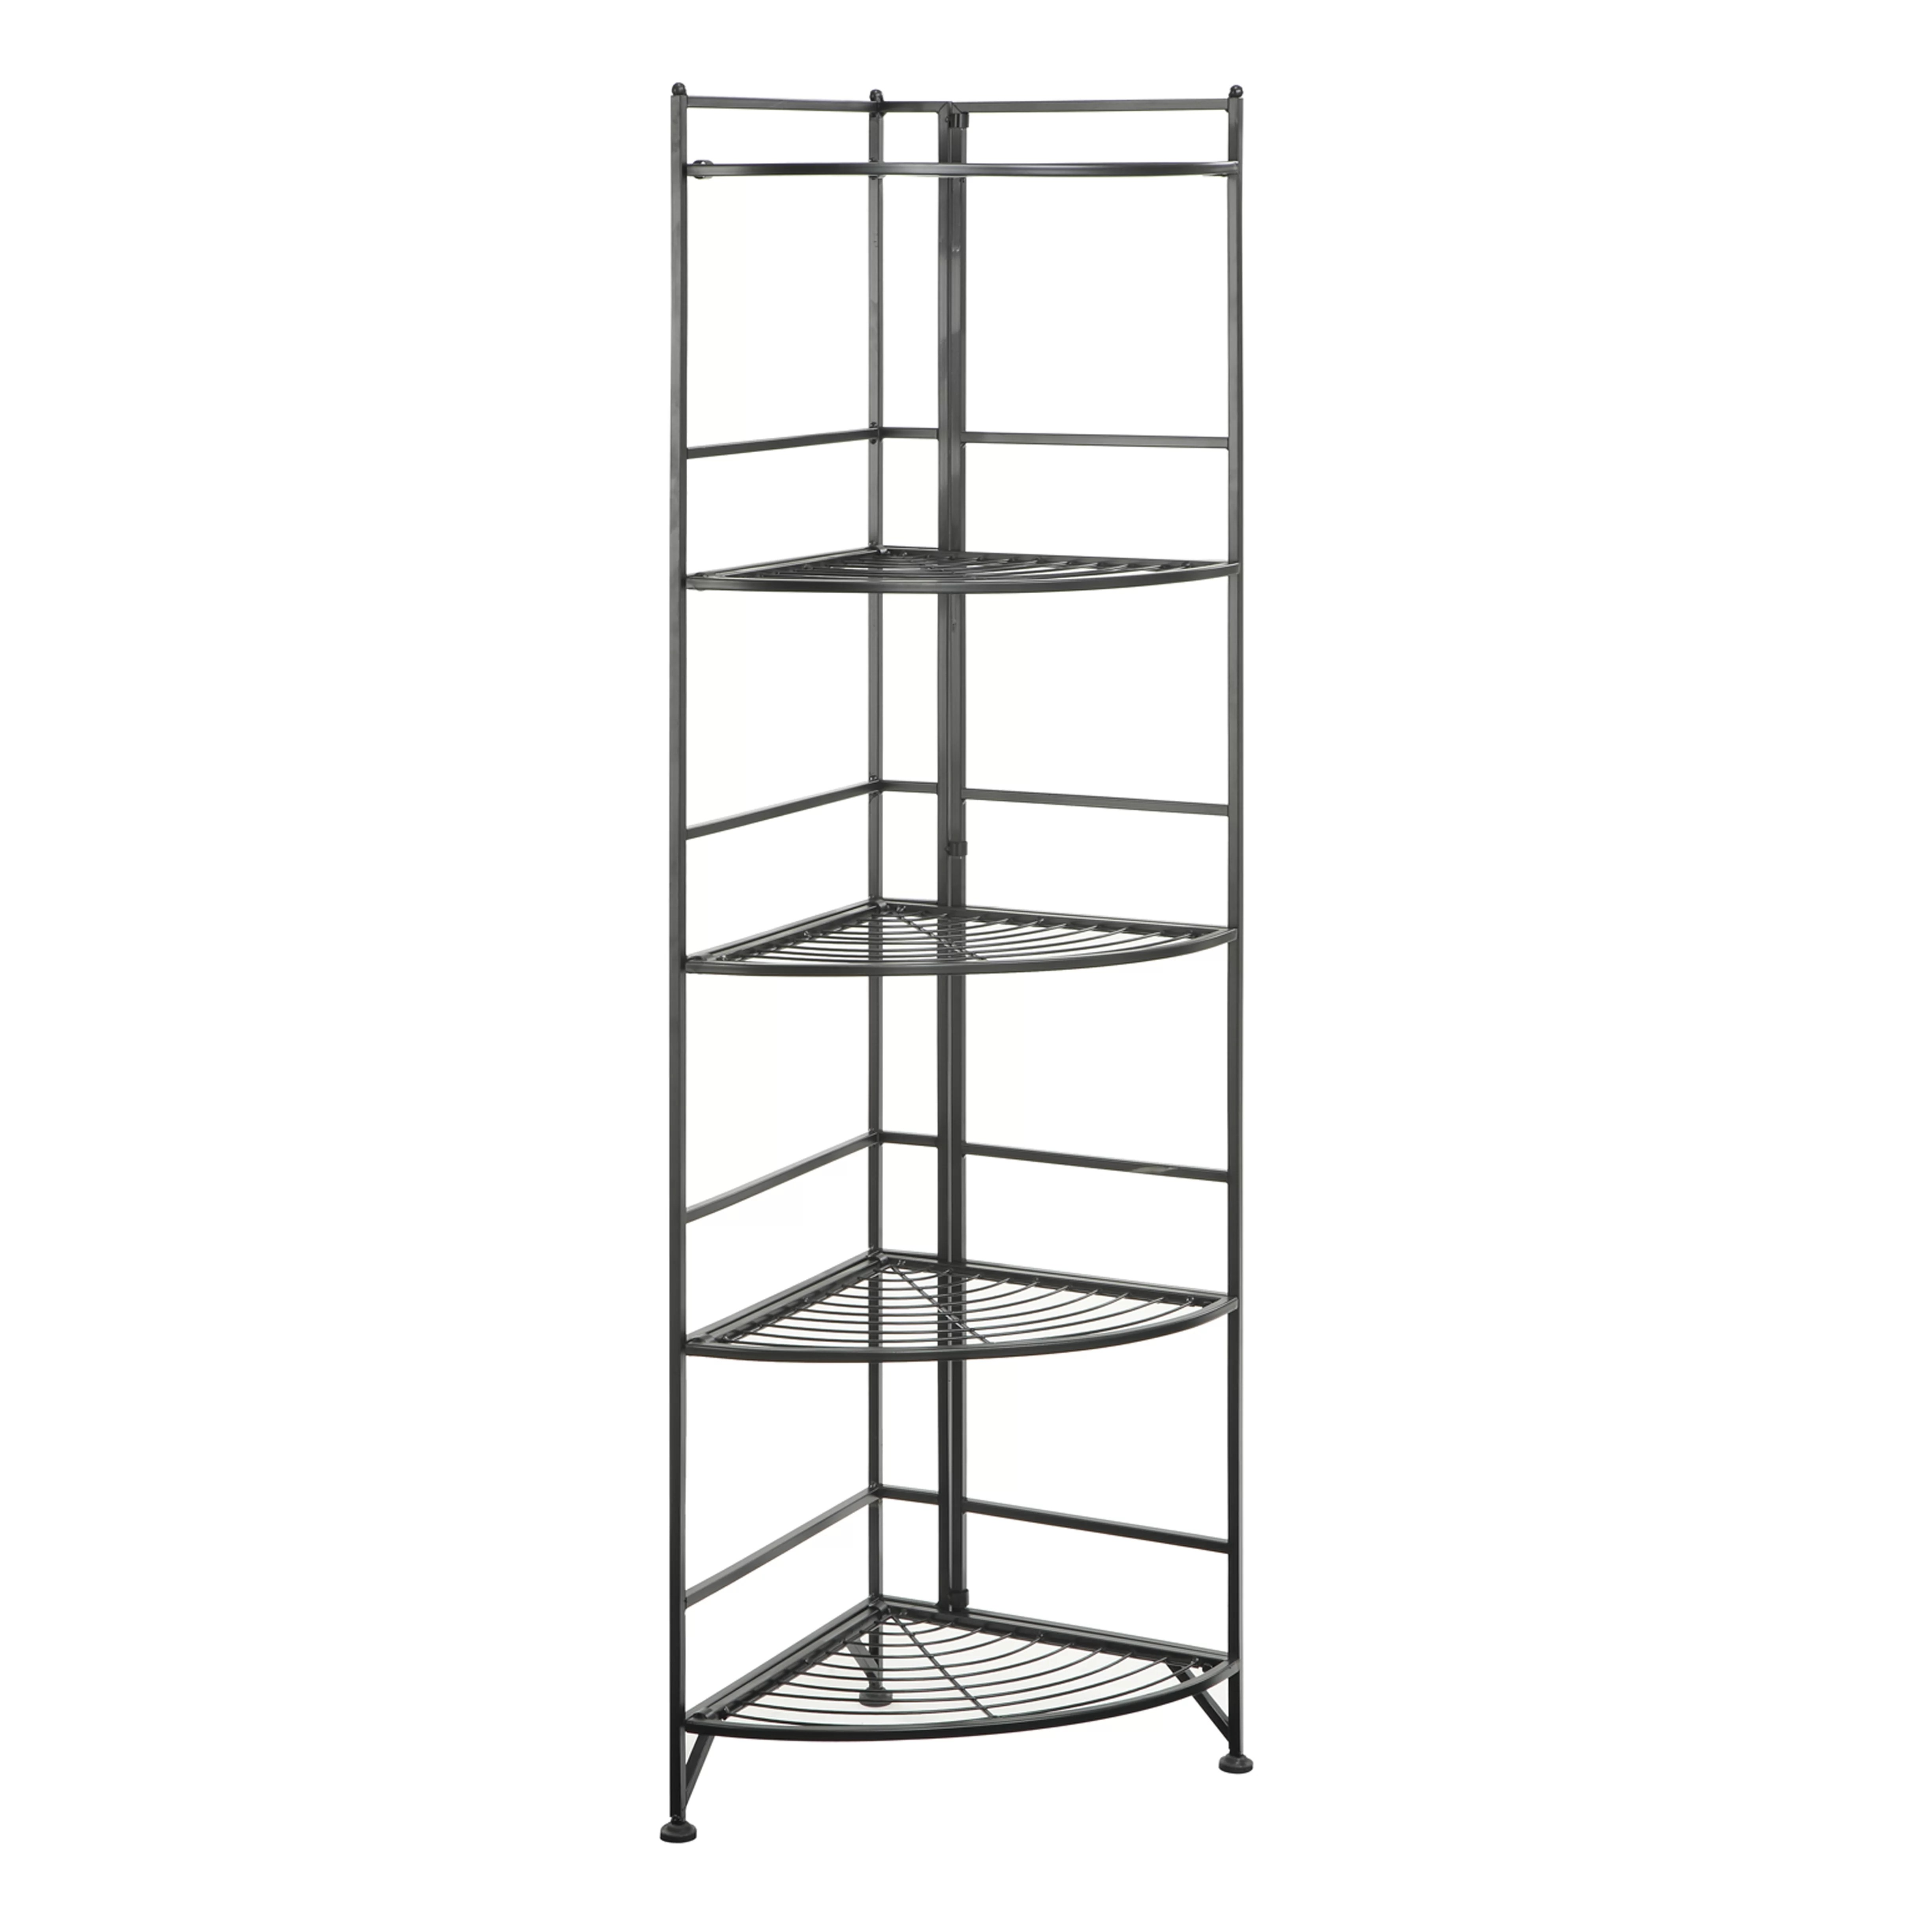 Convenience Concepts Designs 2 Go 5 Tier Folding Metal